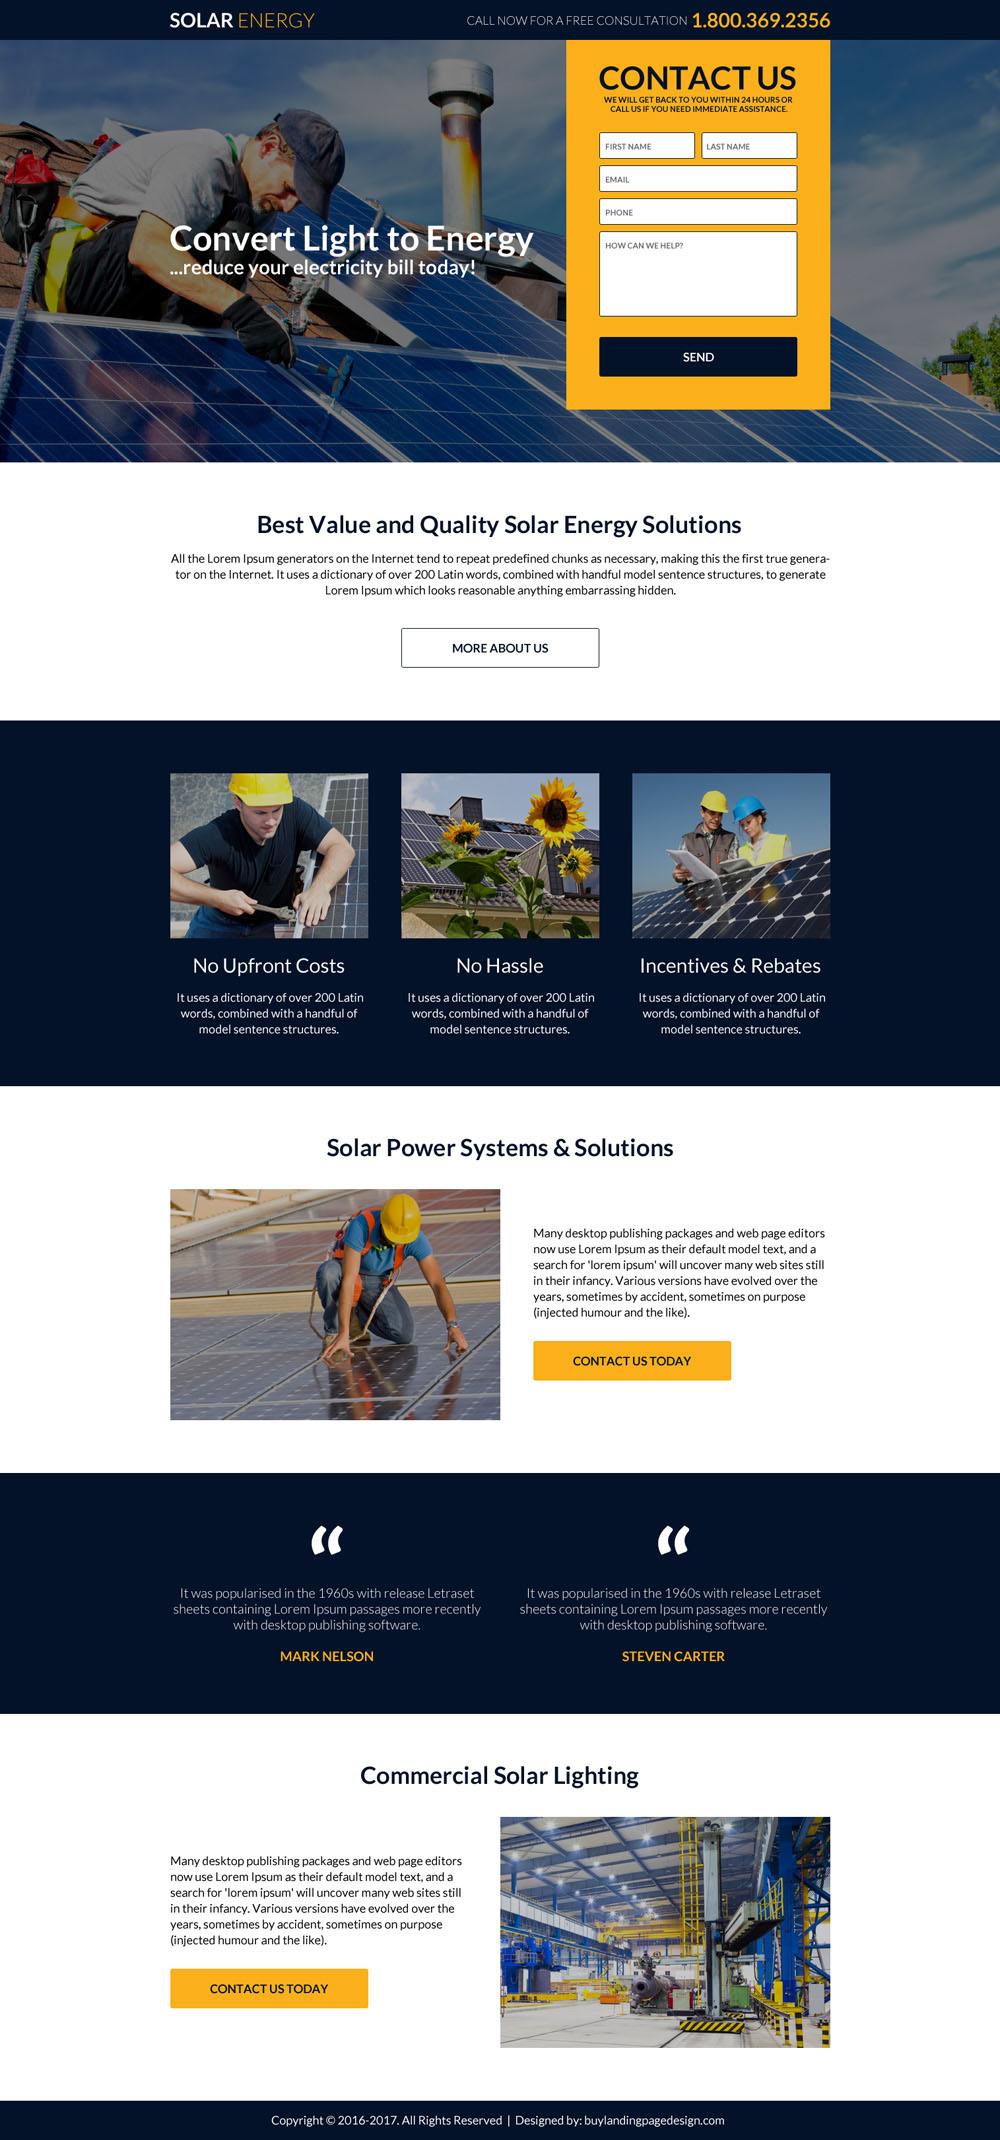 Responsive Solar Energy Landing Page Design Added To Landingpagedesign